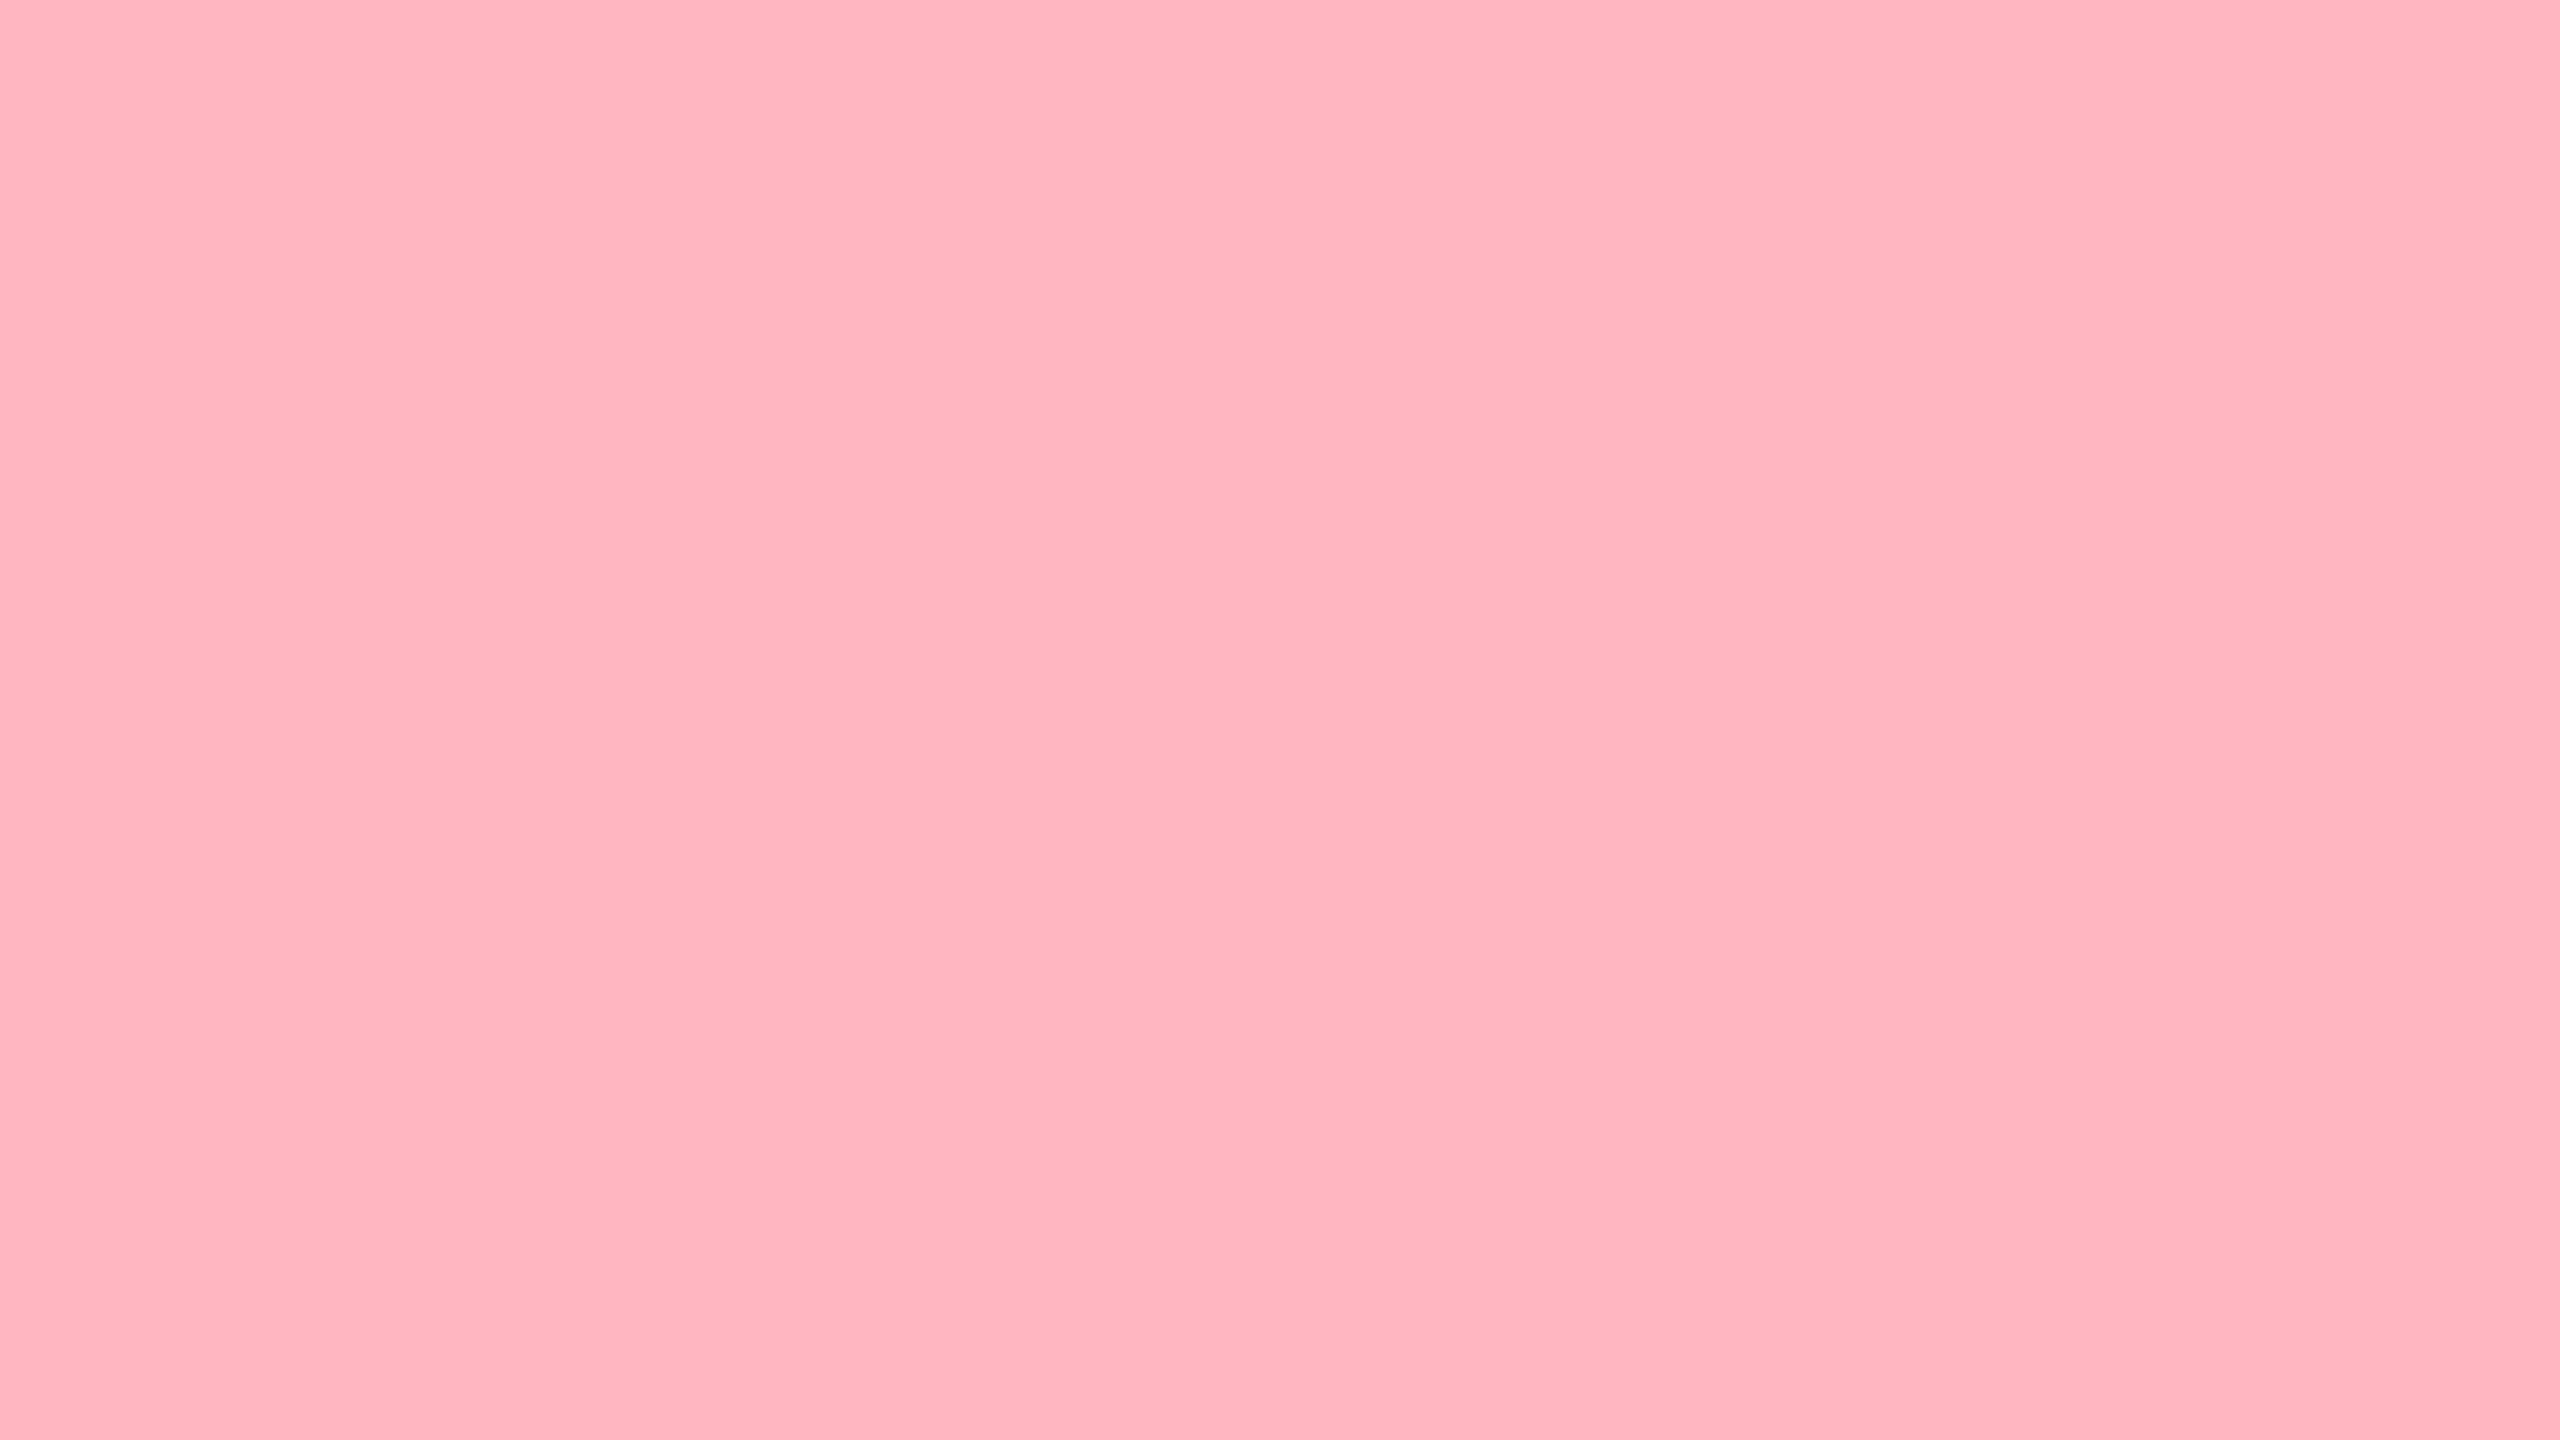 2560x1440 Light Pink Solid Color Background